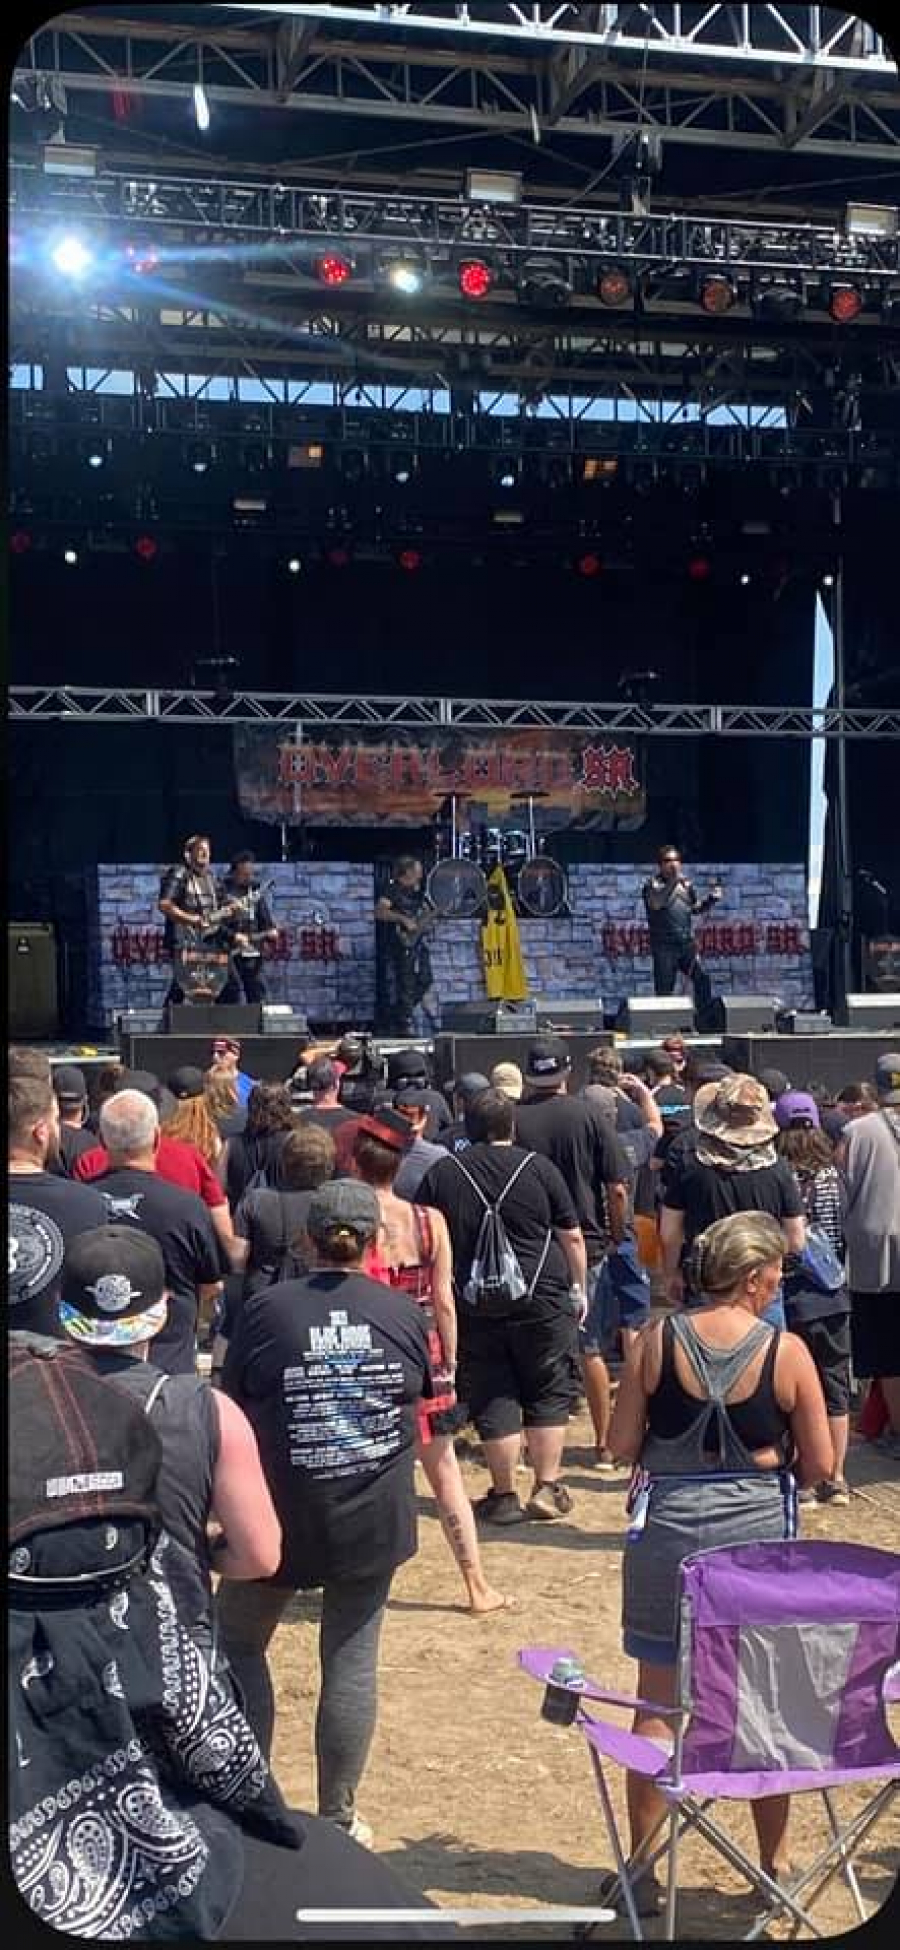 Overlord SR opening the Blue Ridge Rock Festival Staurday September 11th, 2021 to a Sold Out Crowd